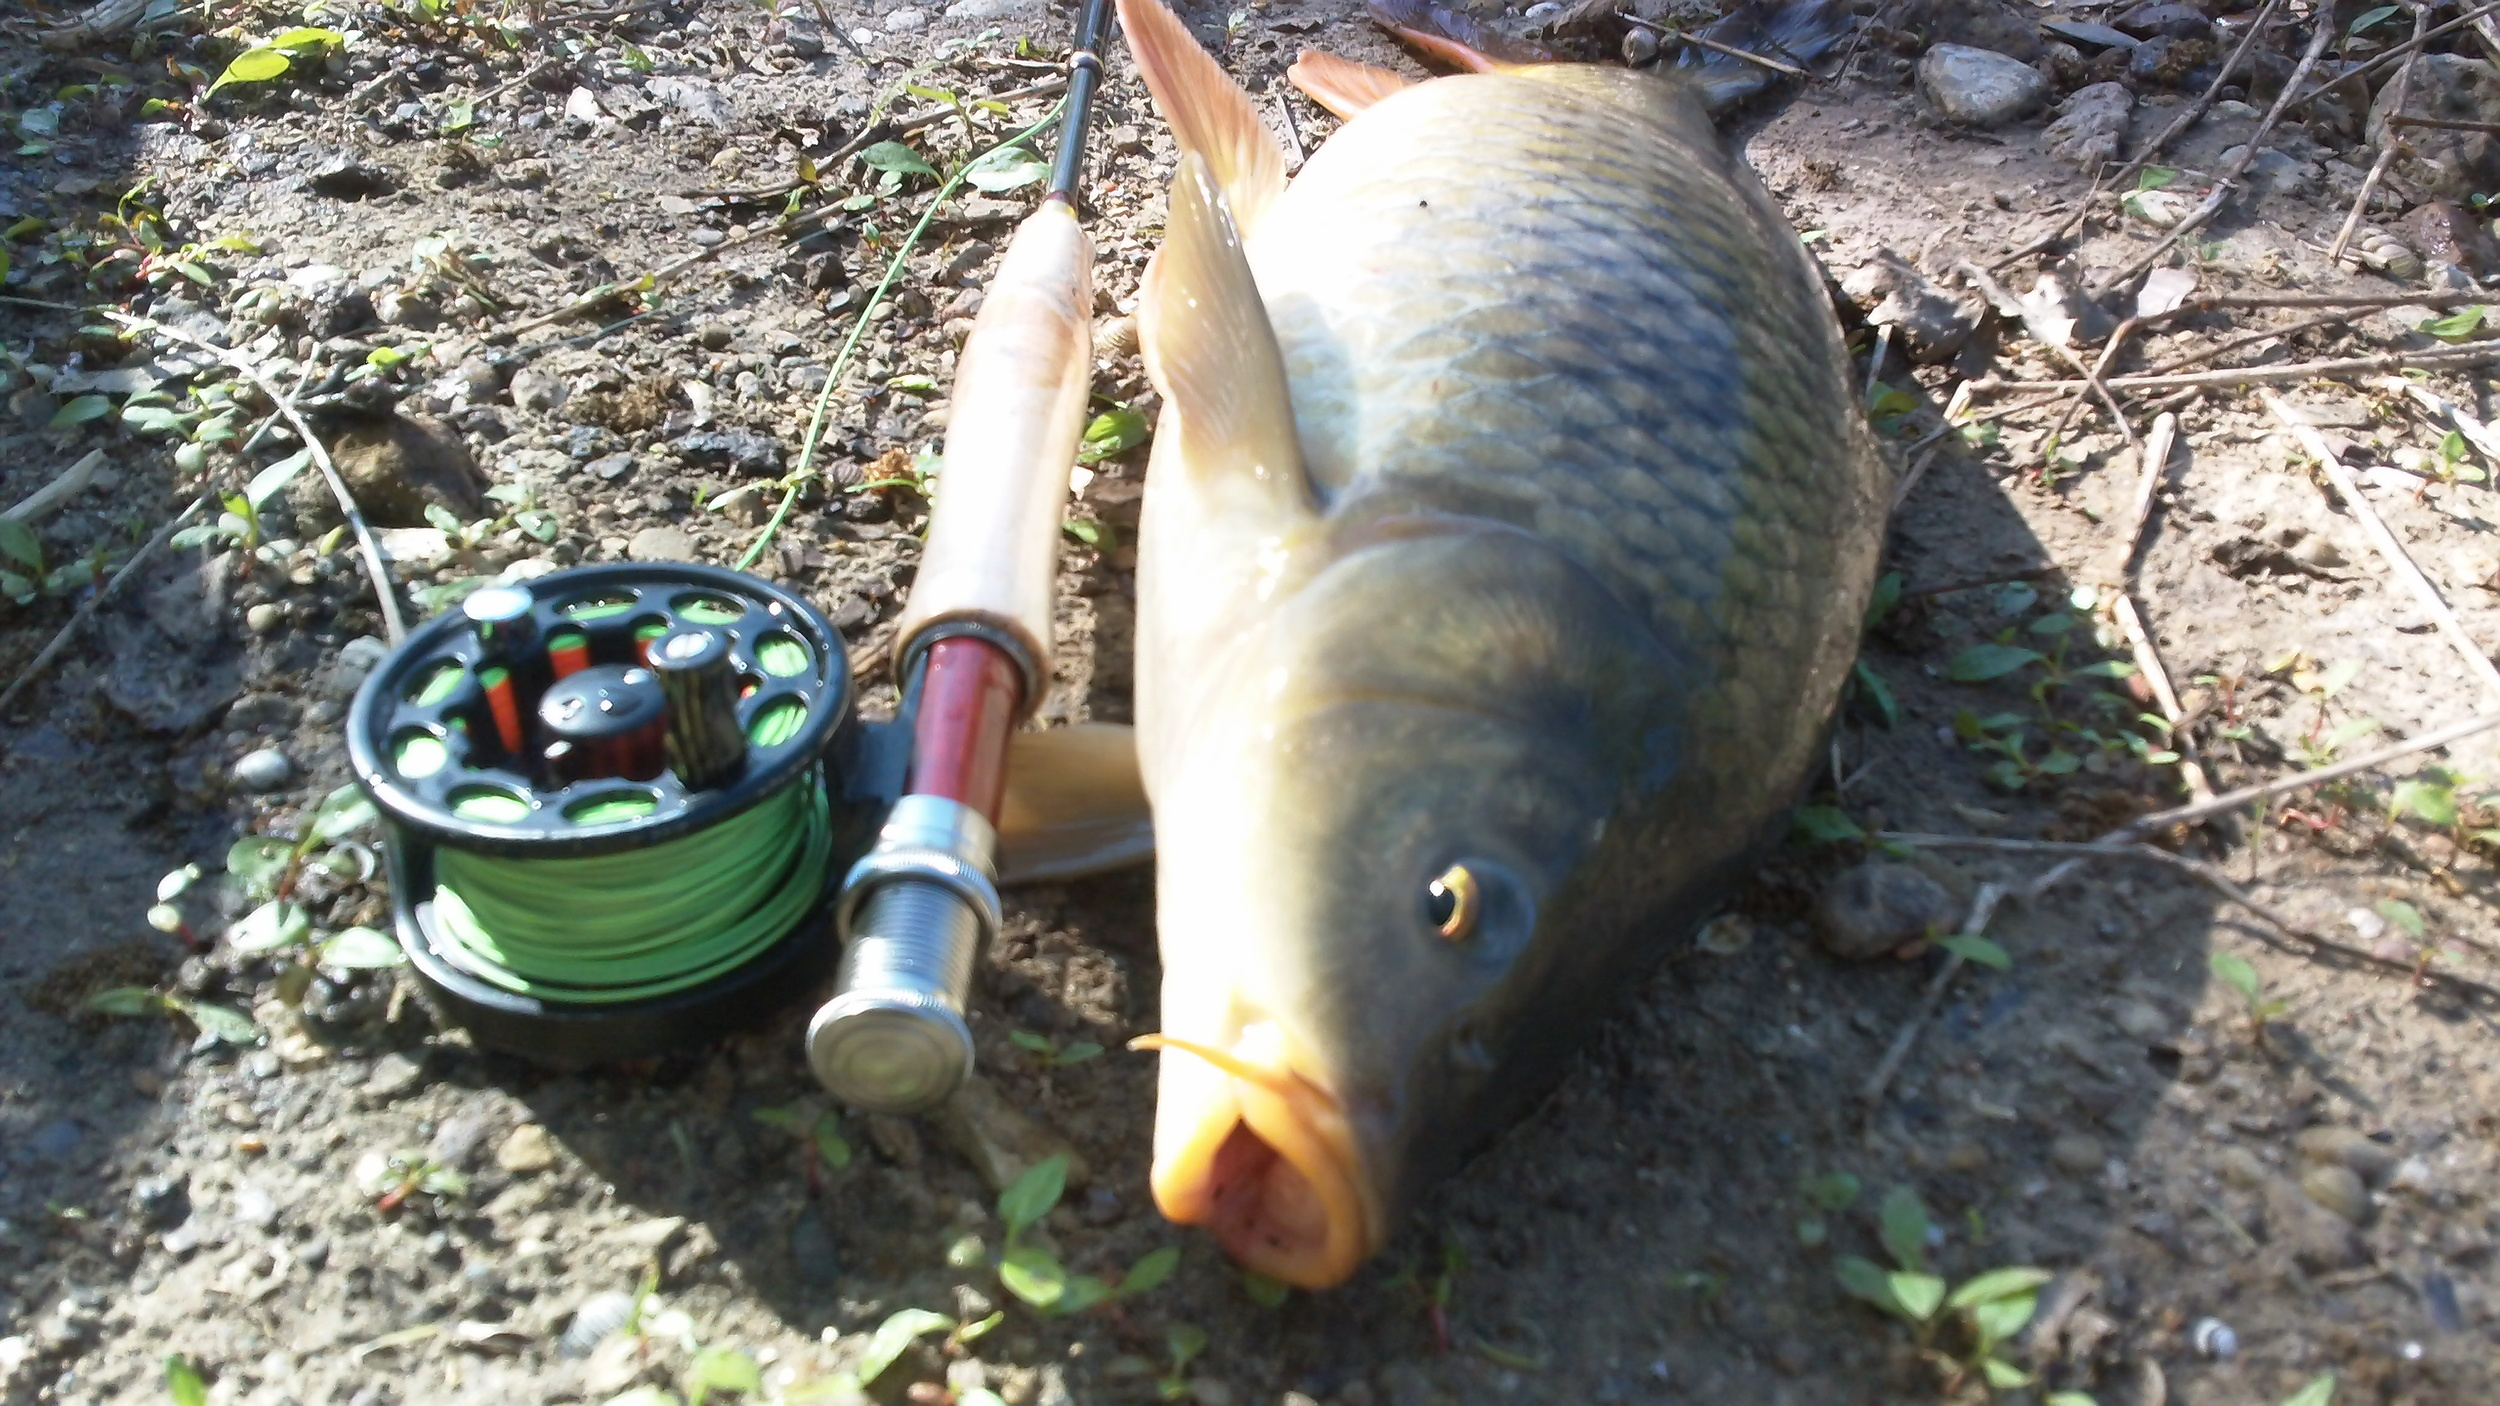 A dinker on the 4 weight!